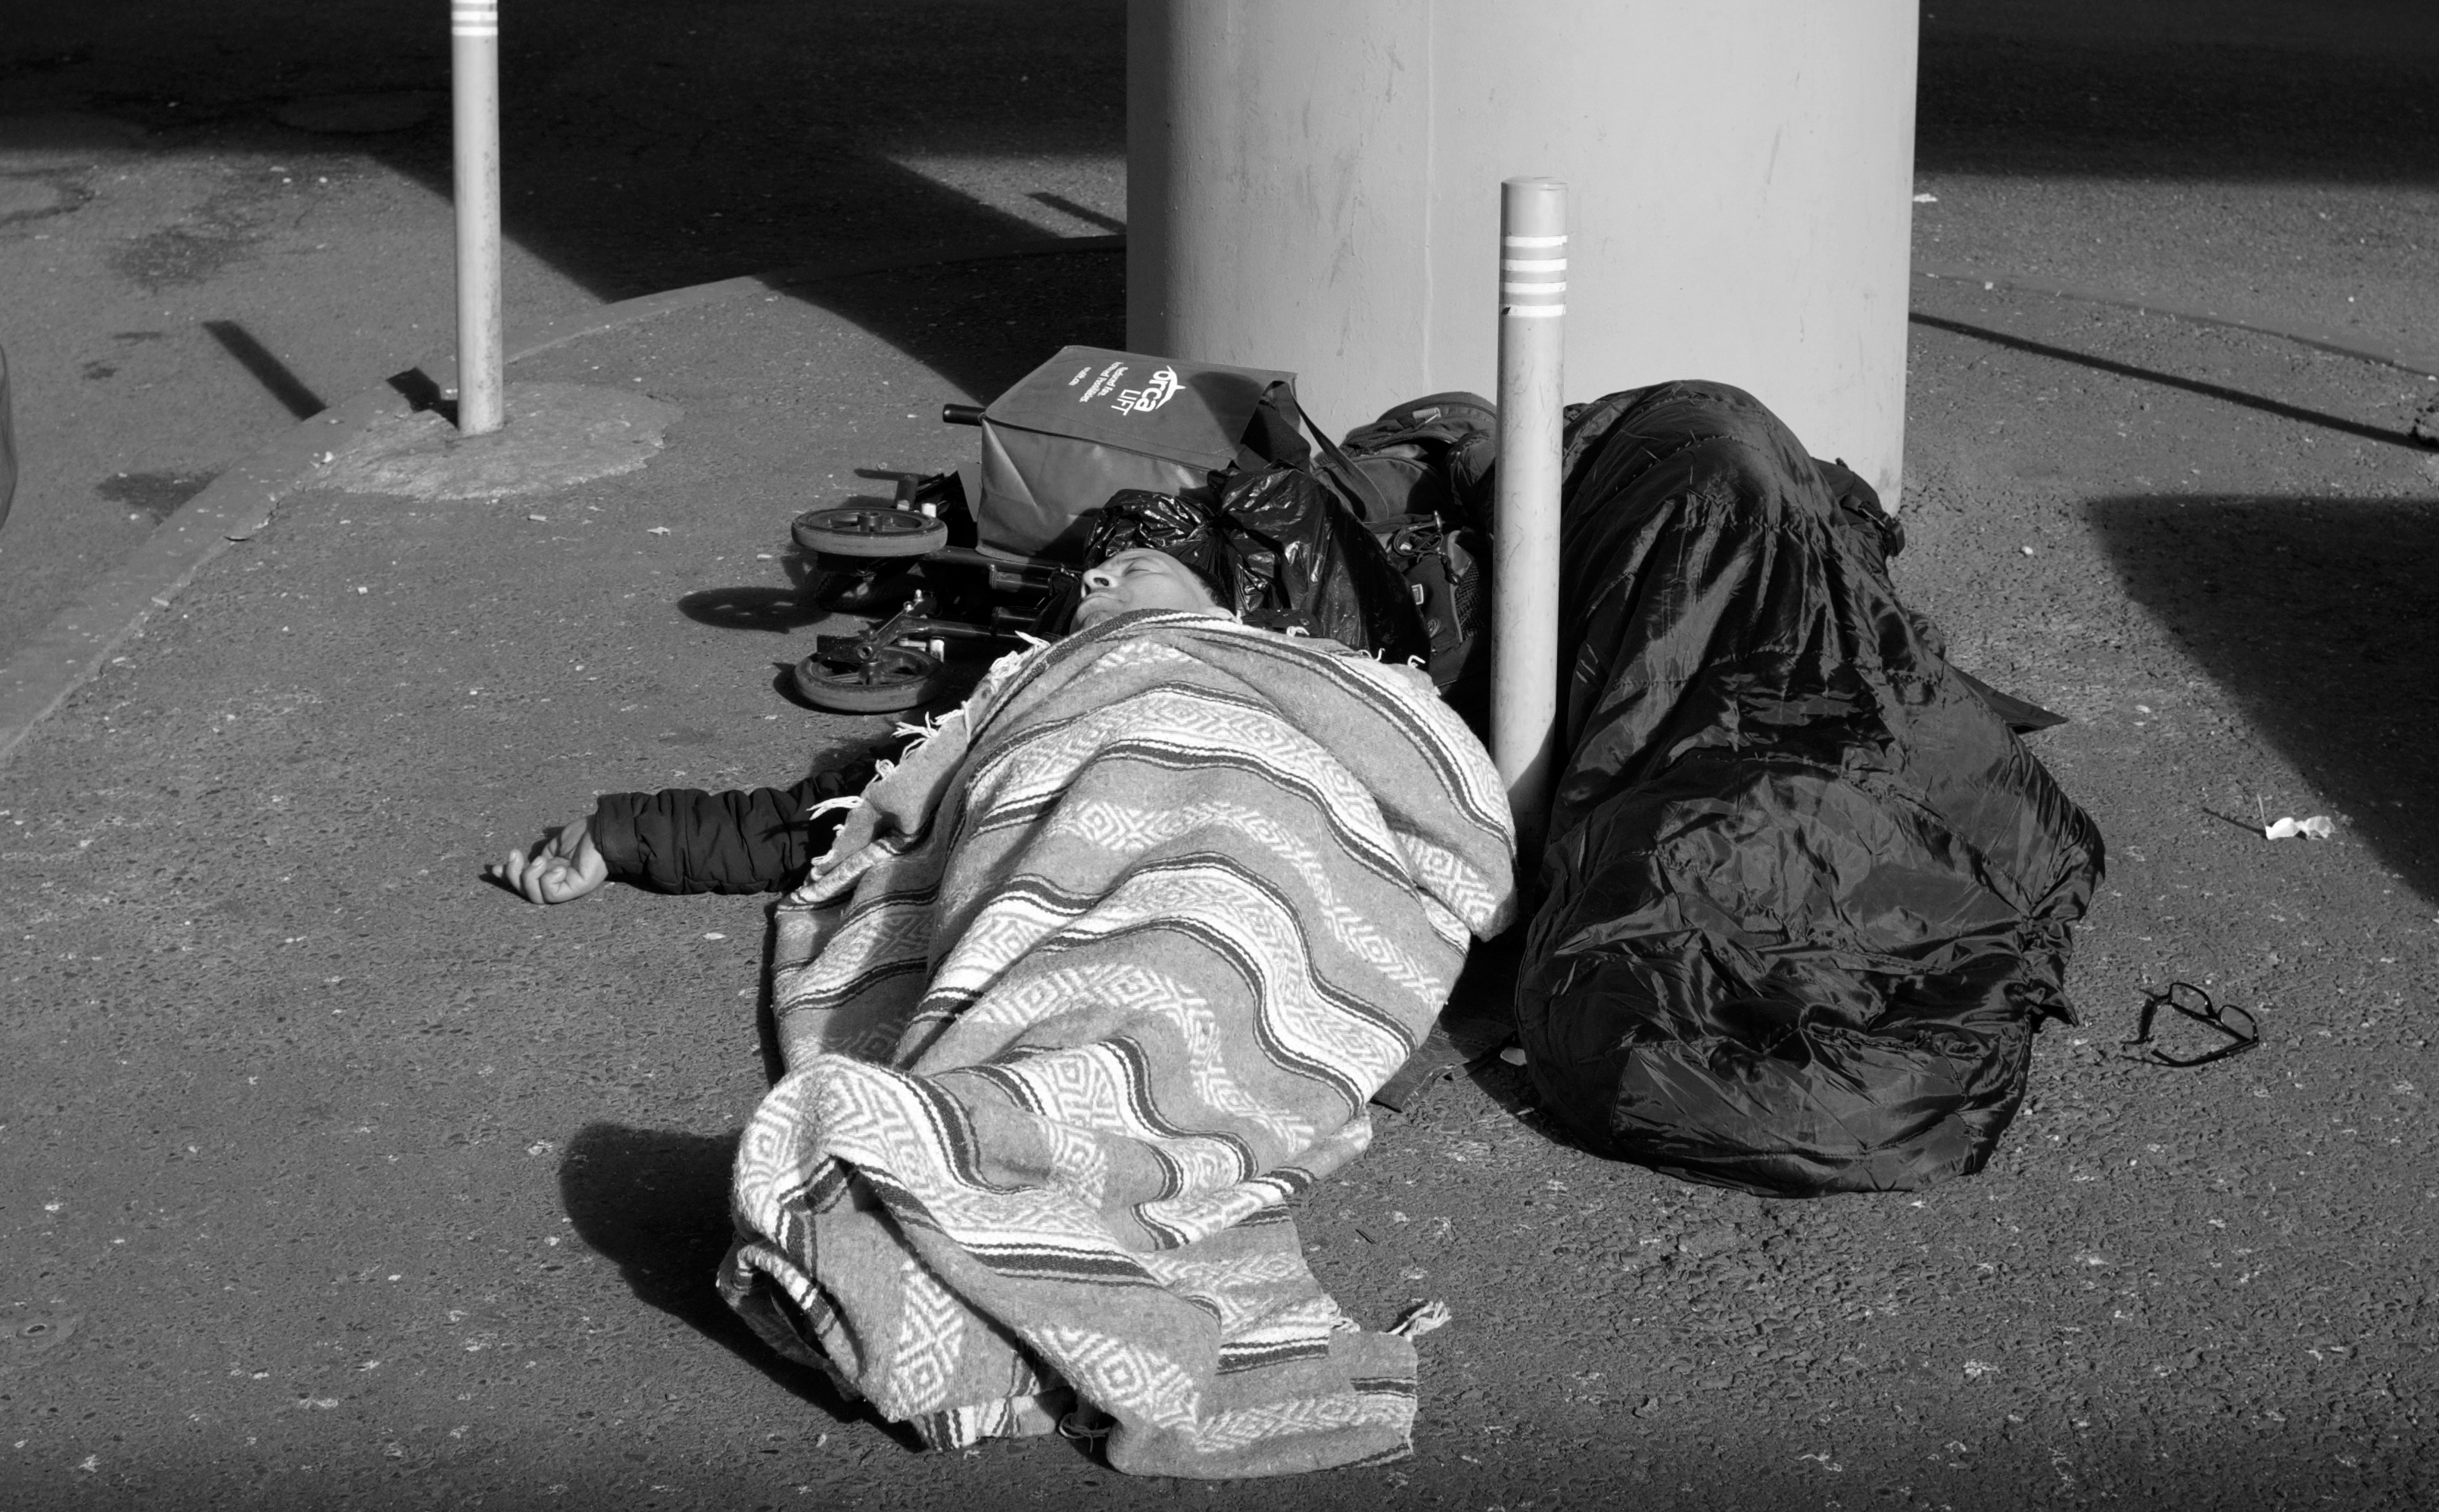 A man sleeping under a blanket on the street